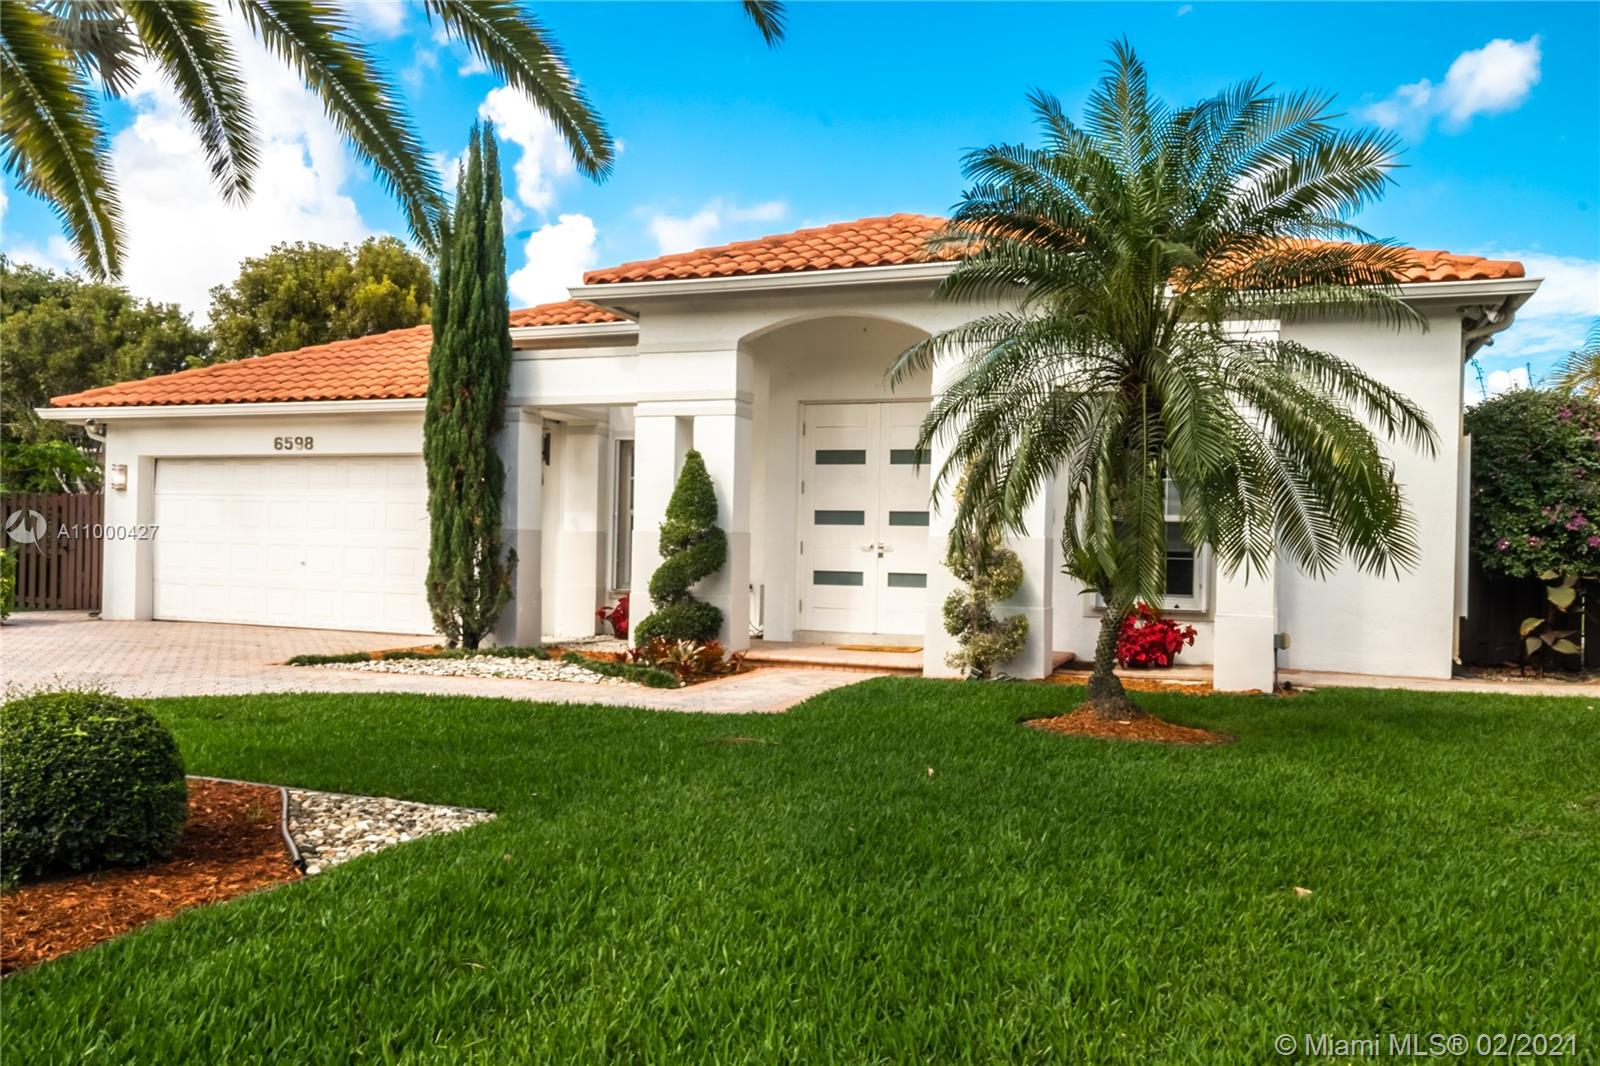 Photo of 6598 NW 113th Pl, Doral, FL 33178